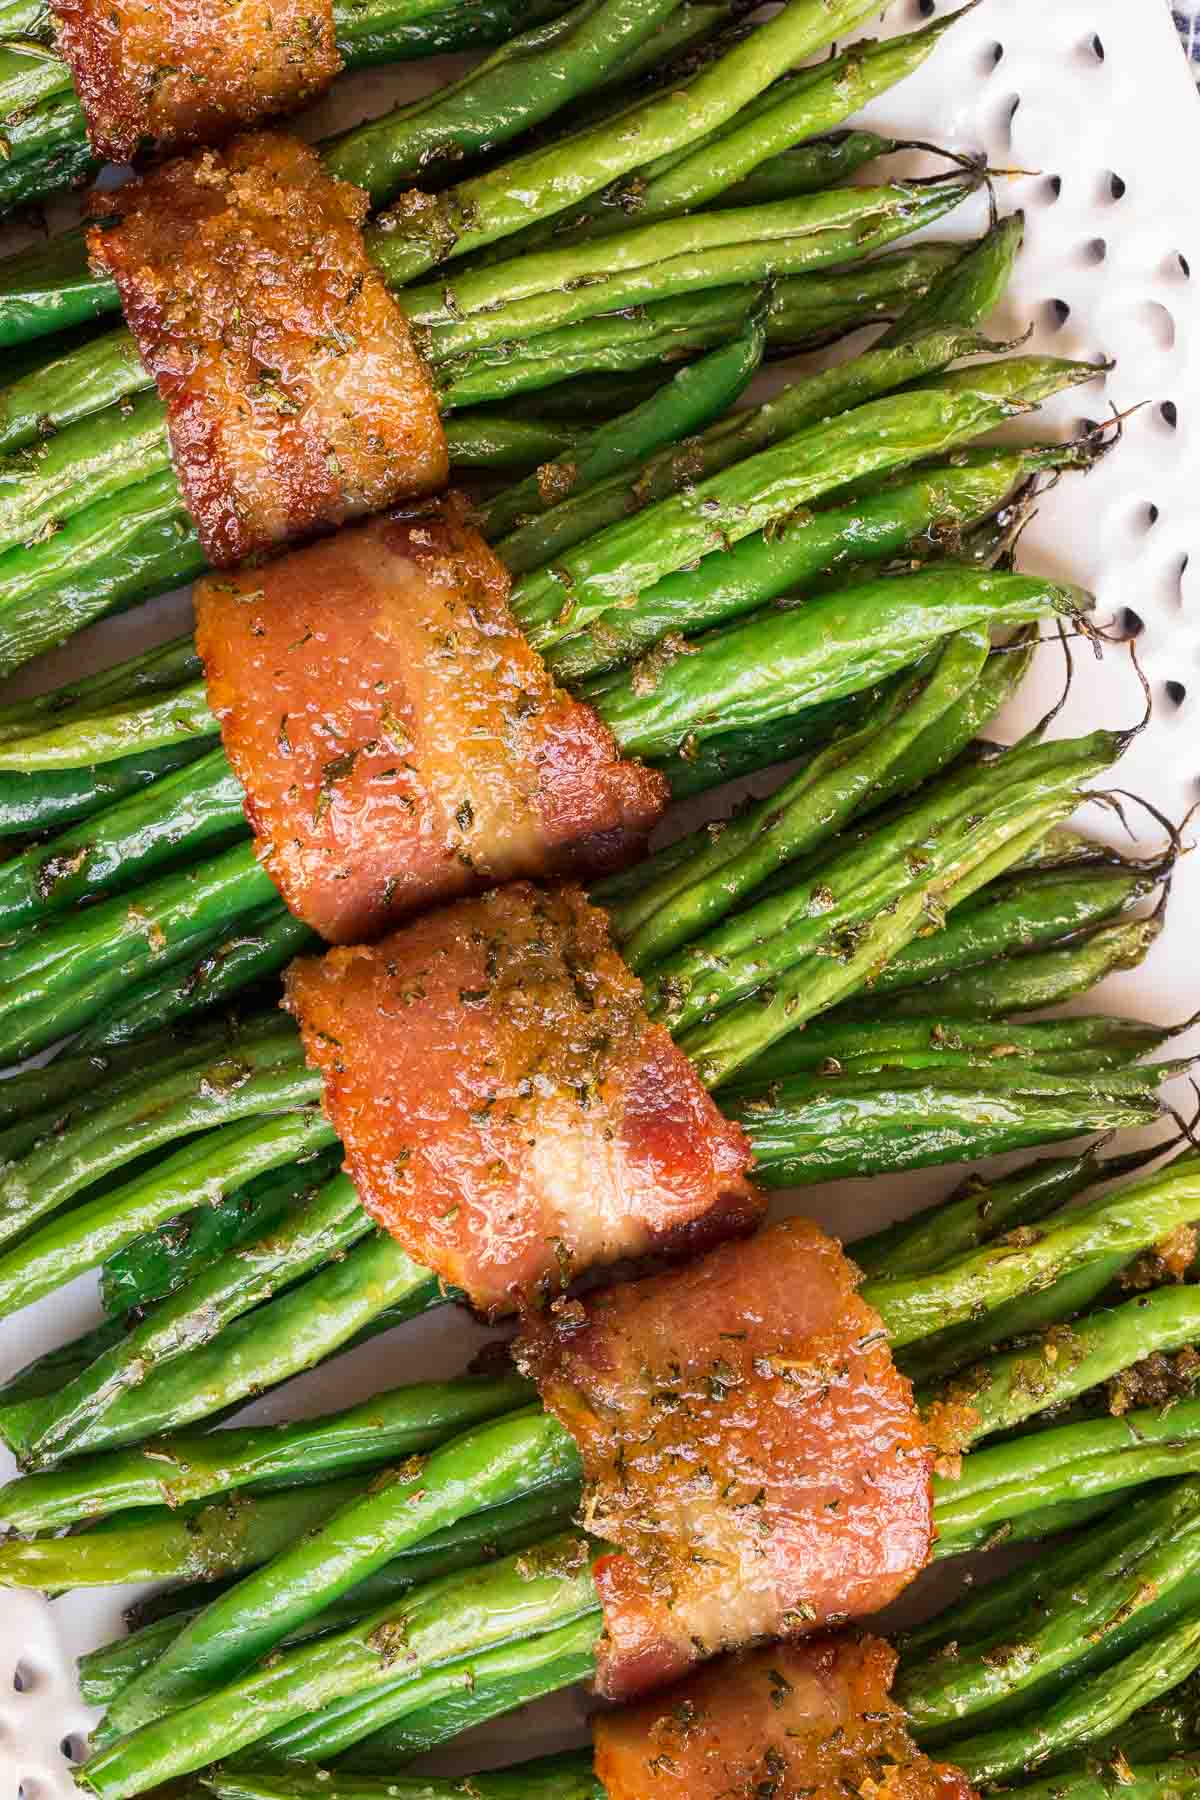 Ultra closeup photo of Make-Ahead Bacon Wrapped Green Beans on a white lace patterned serving platter.